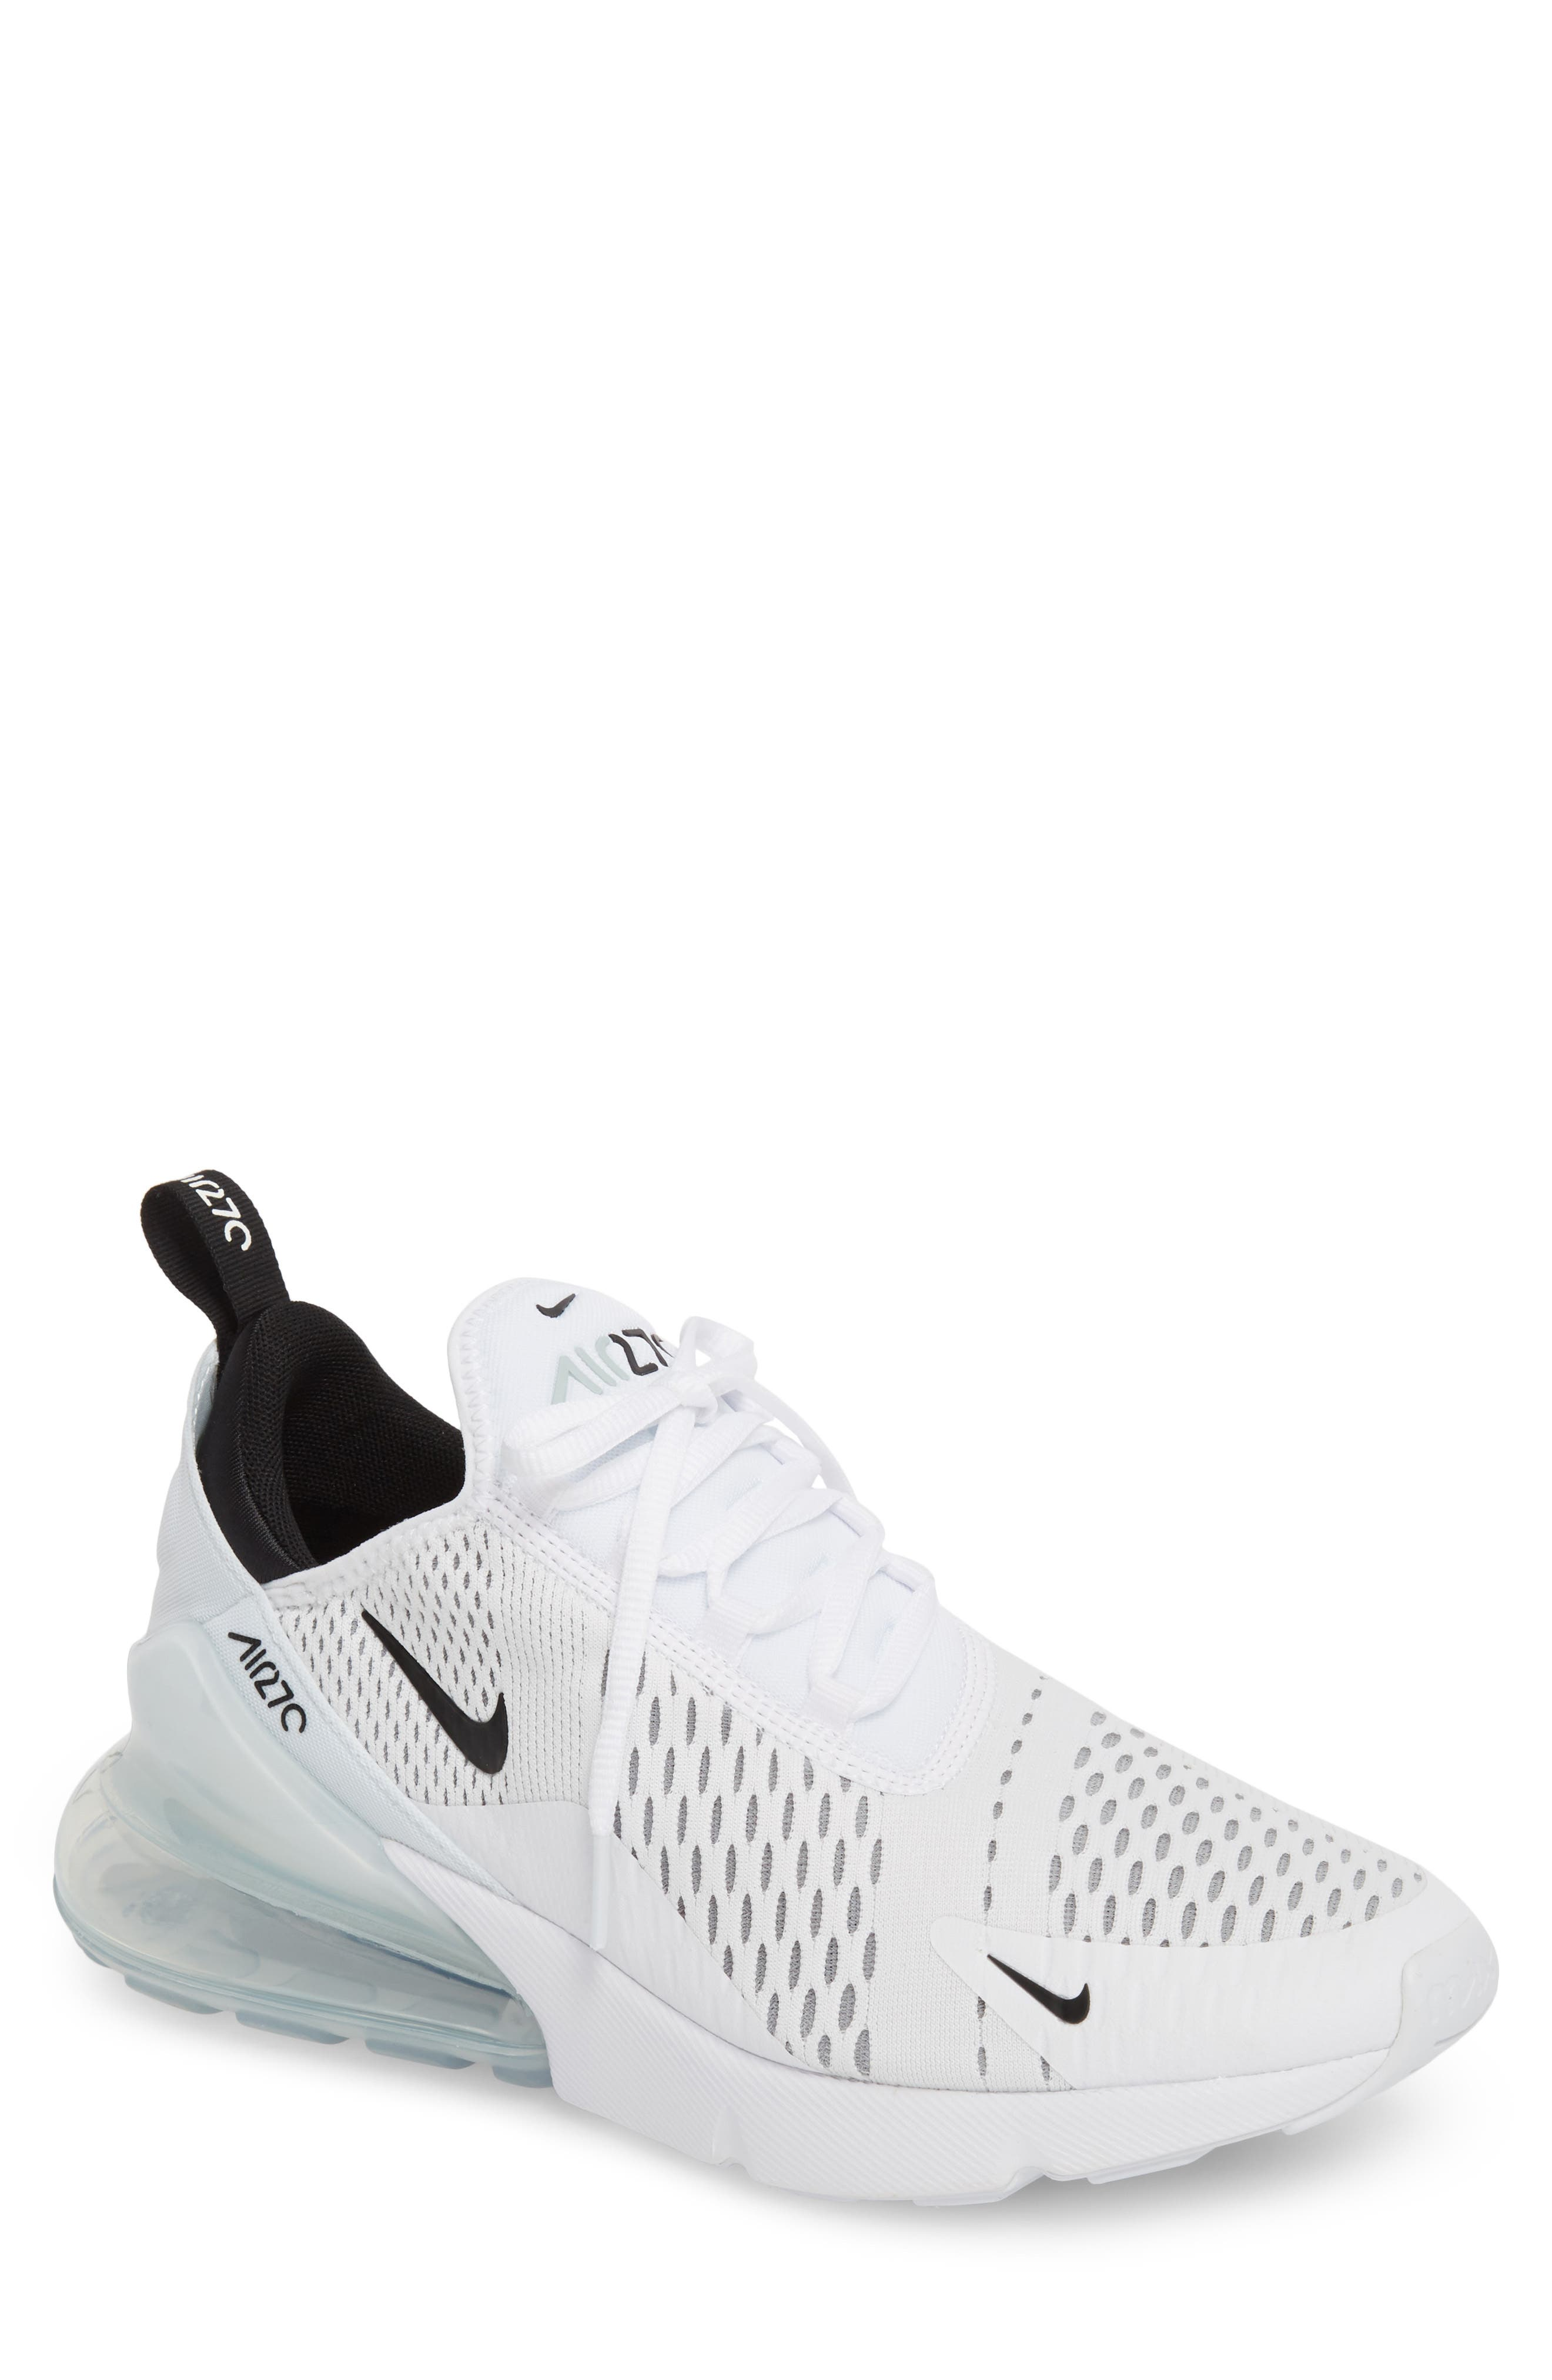 Men's Nike Air Max Torch 4 (Dark GreyWhite)